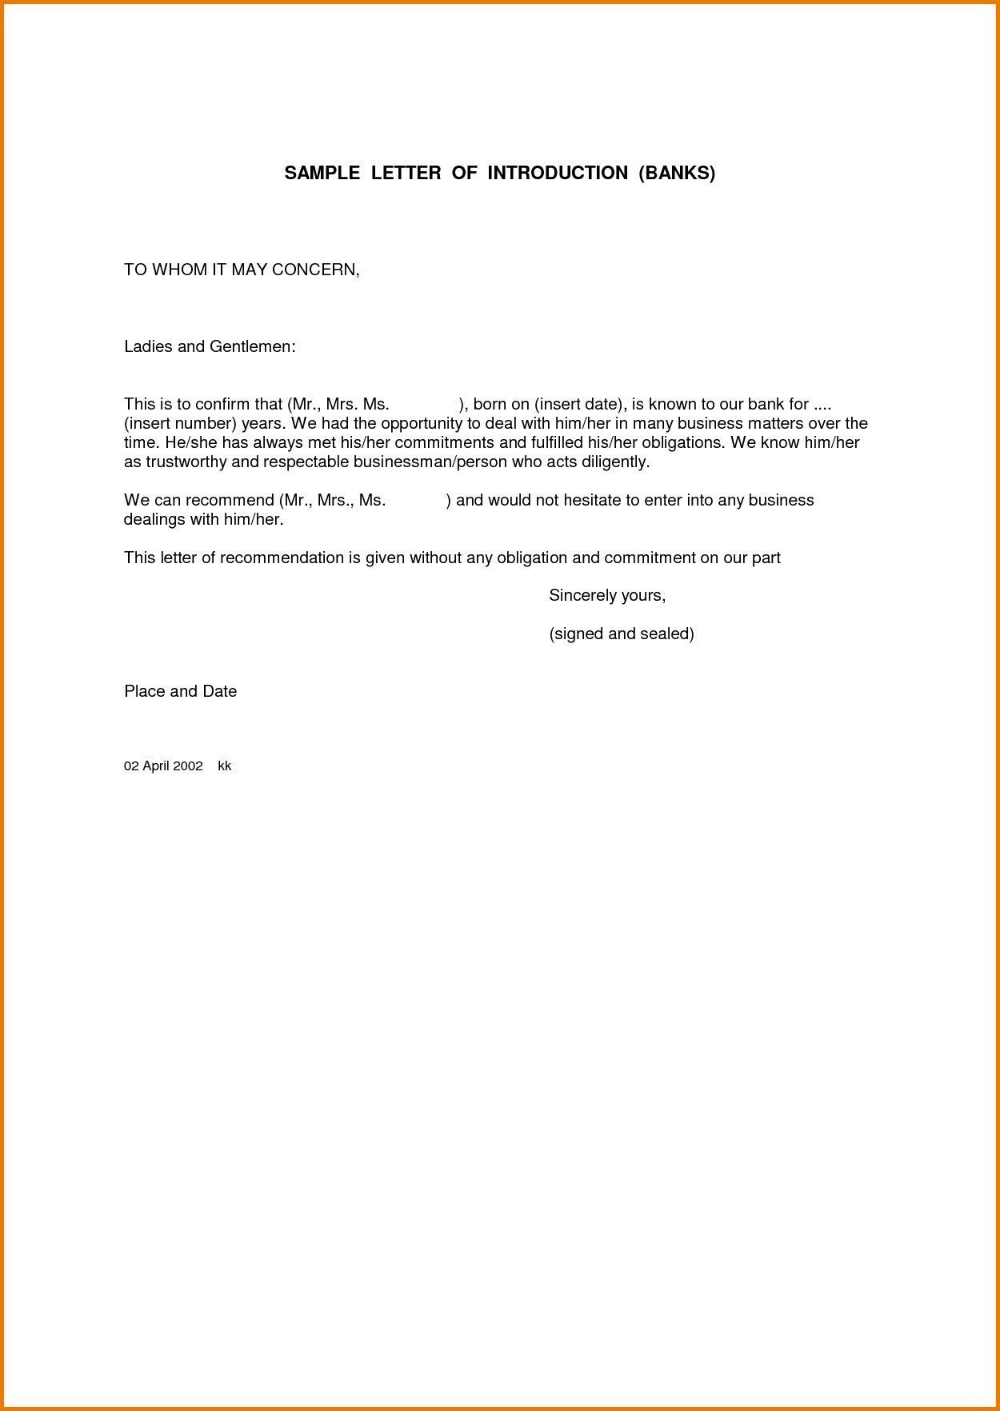 how to write a letter to whom it may concern sample